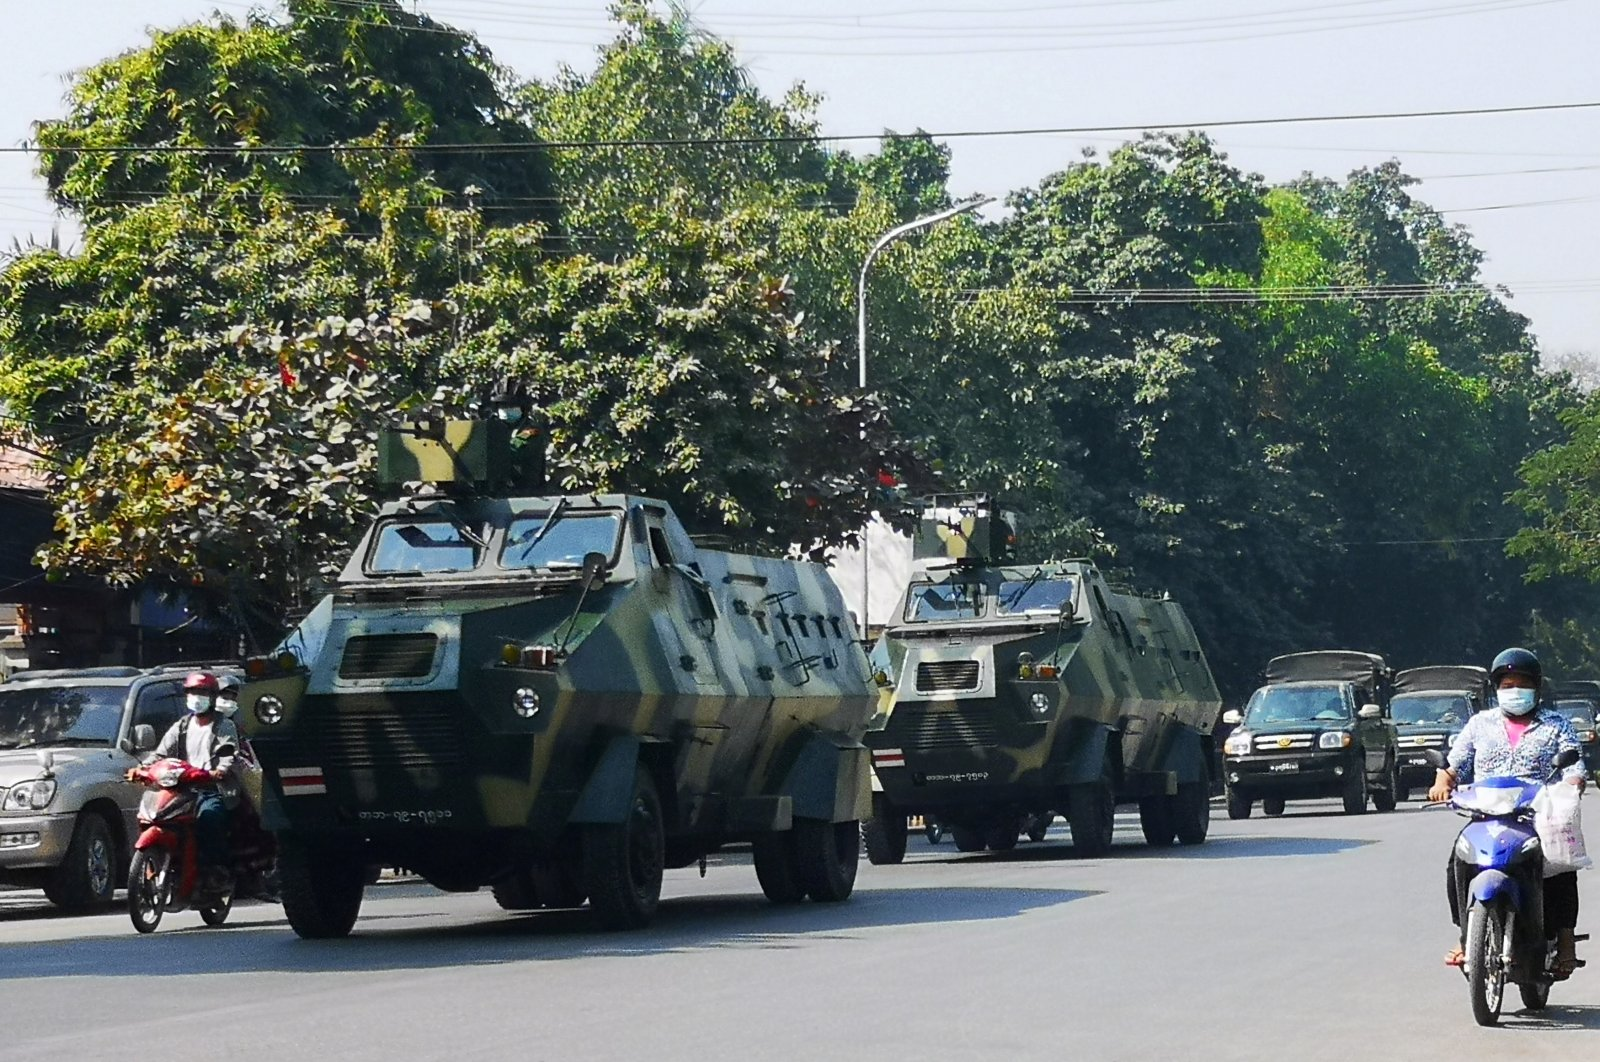 Myanmar Army armored vehicles drive past a street after they seized power in a coup in Mandalay, Myanmar February 2, 2021. (Reuters Photo)